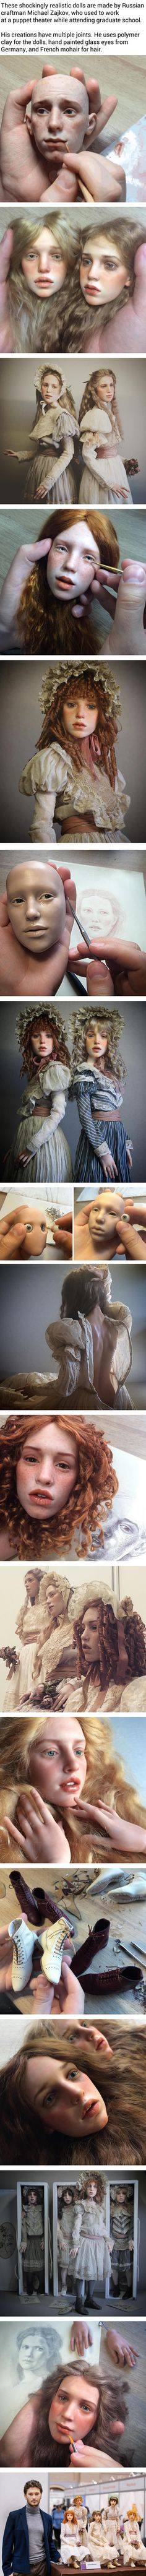 Michael Zajkov These Stunningly Realistic Doll Faces Will Make Your Skin Crawl (By Michael Zajkov)